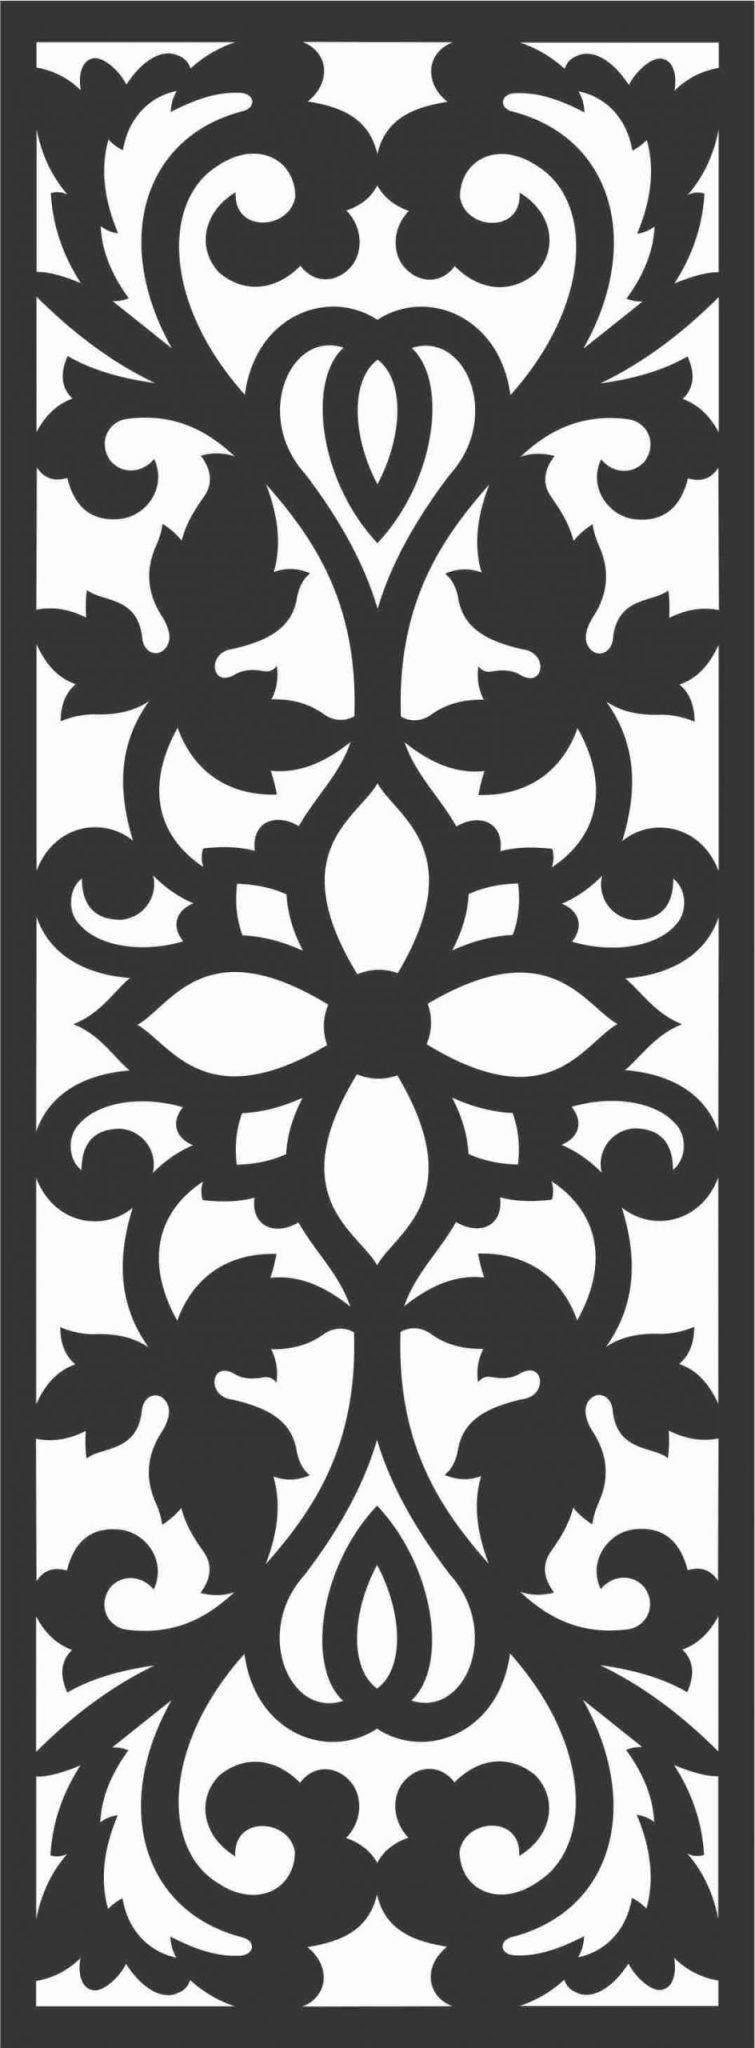 Floral Screen Patterns Design 77 Free DXF File